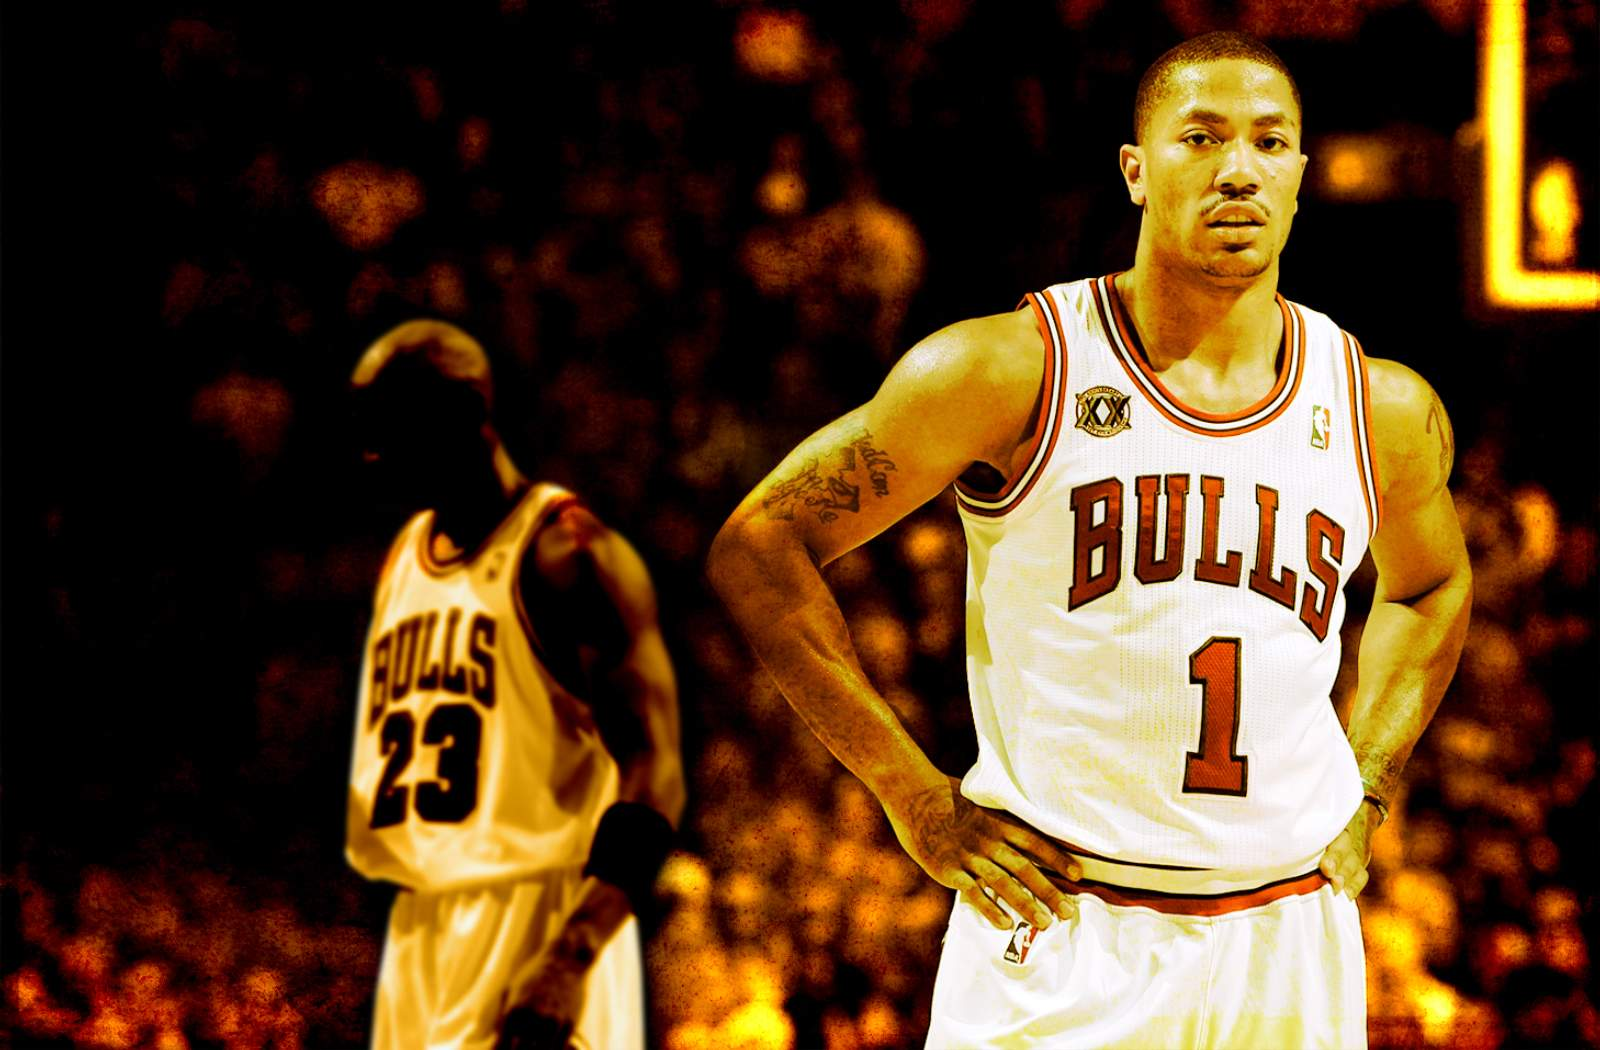 Derrick rose wallpapers wallpaper cave - Derrick rose cavs wallpaper ...